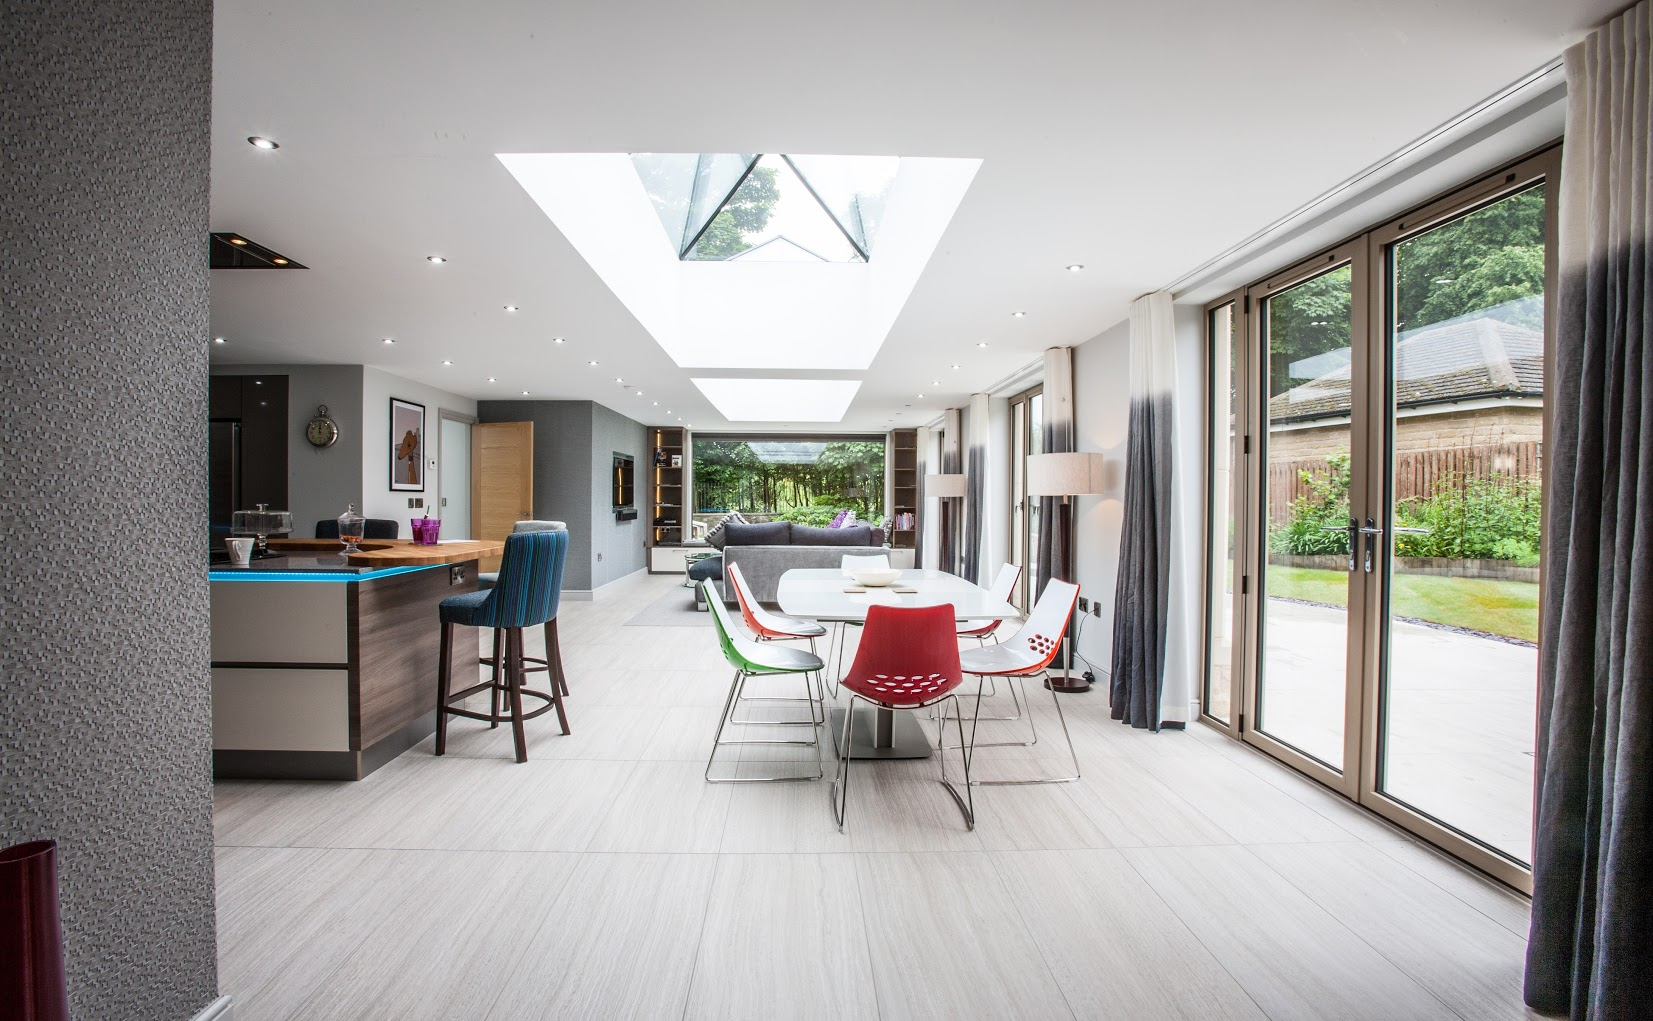 Lantern Rooflights For Home Extension